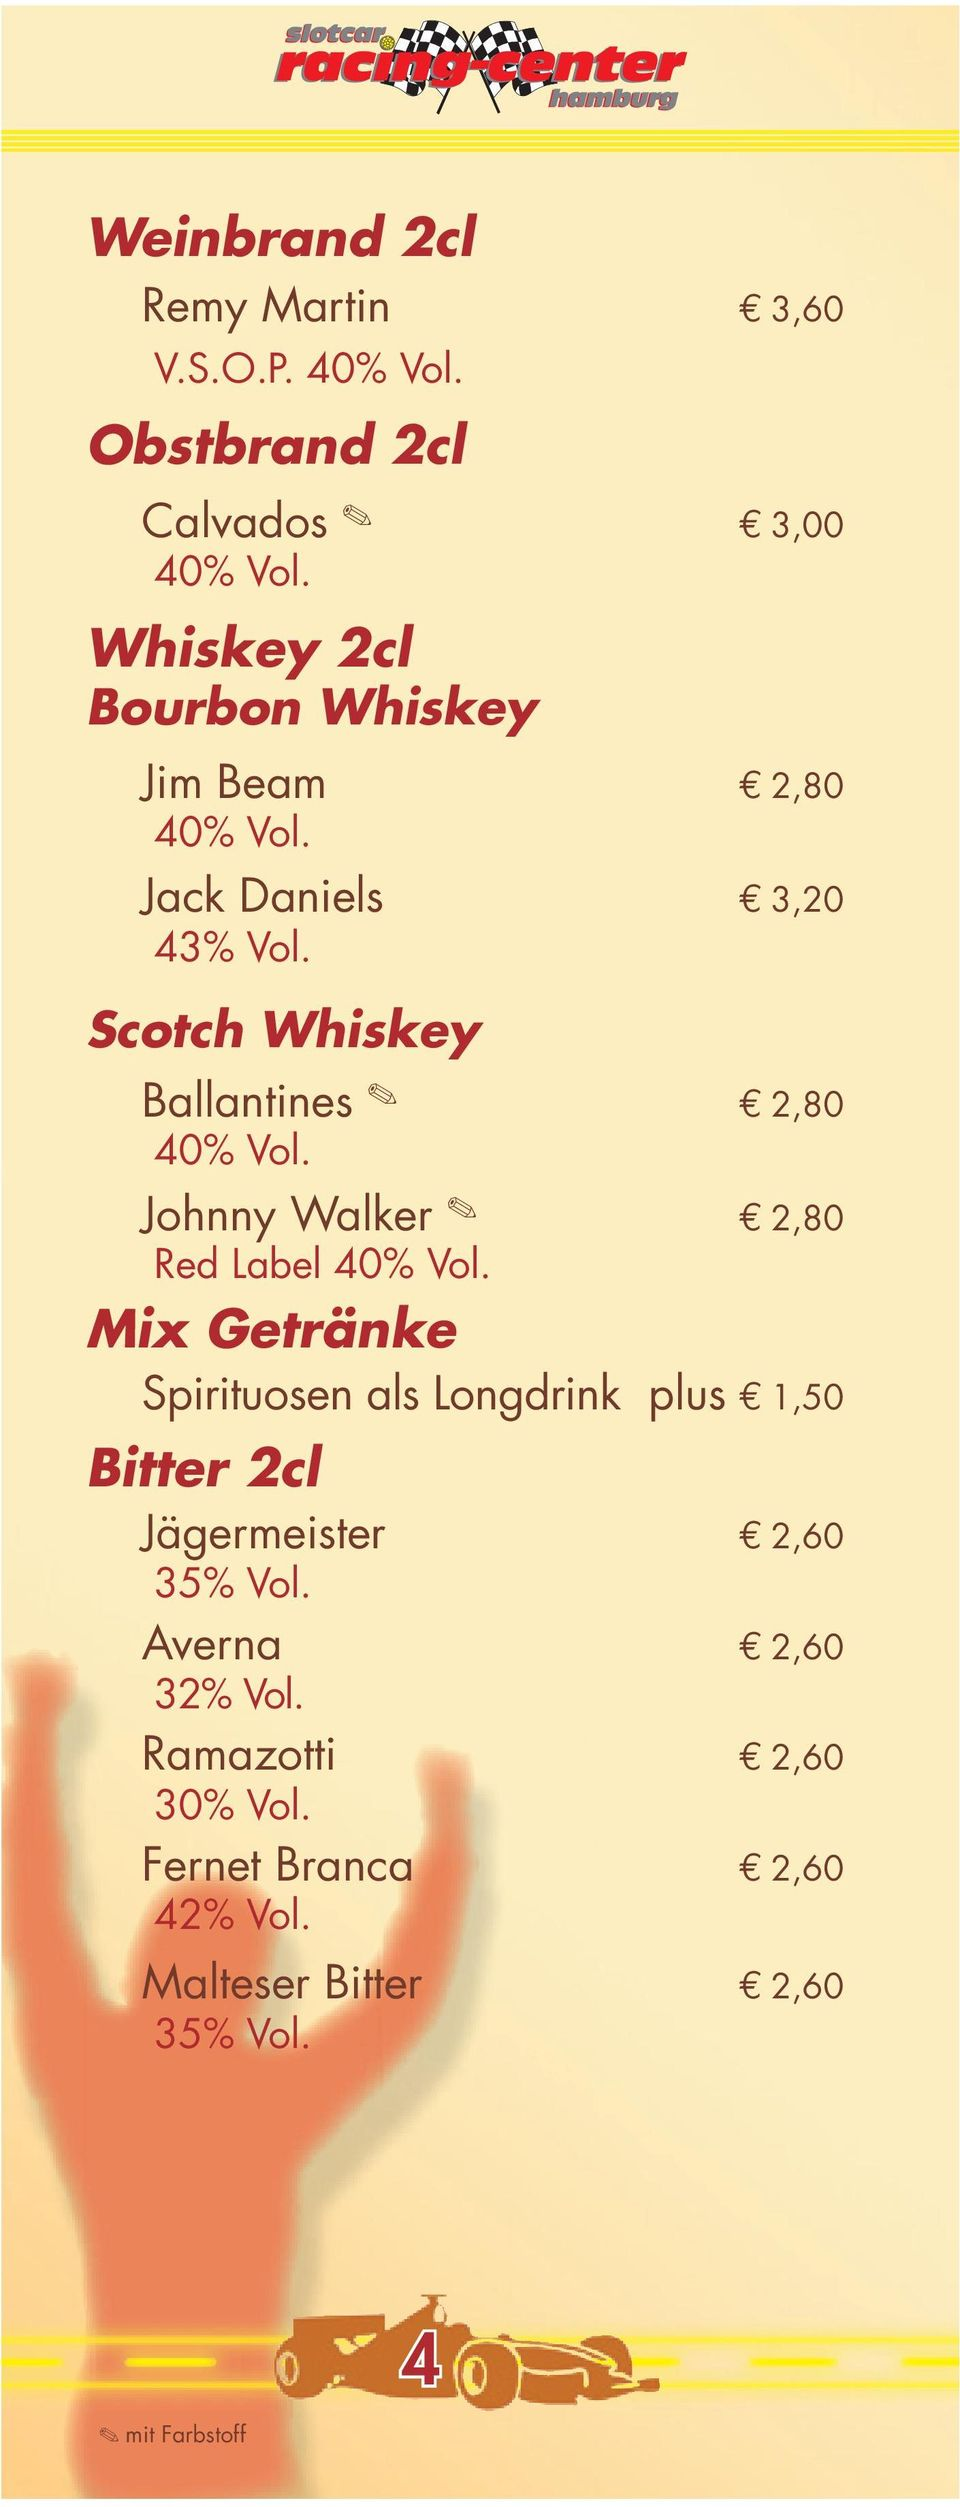 Scotch Whiskey Ballantines 2,80 Johnny Walker 2,80 Red Label Mix Getränke Spirituosen als Longdrink